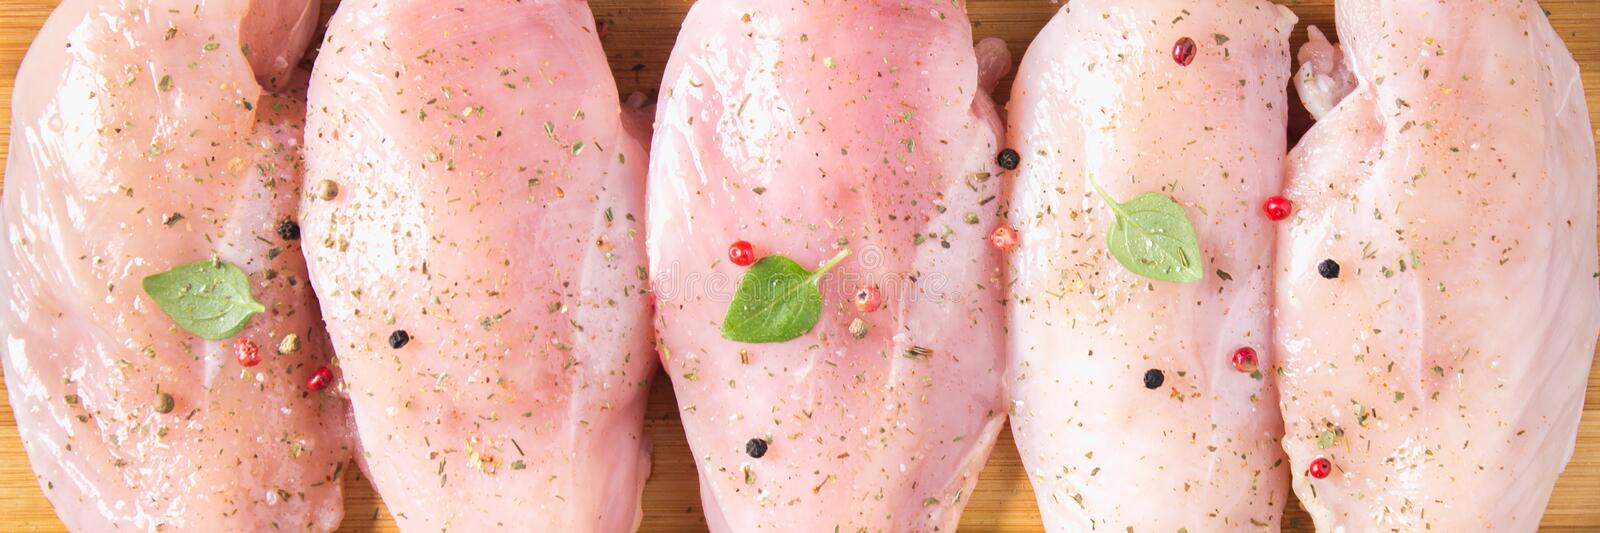 Raw chicken fillets on a cutting board against the background of a wooden table. Meat ingredients for cooking. Flat lei. Top view. stock images